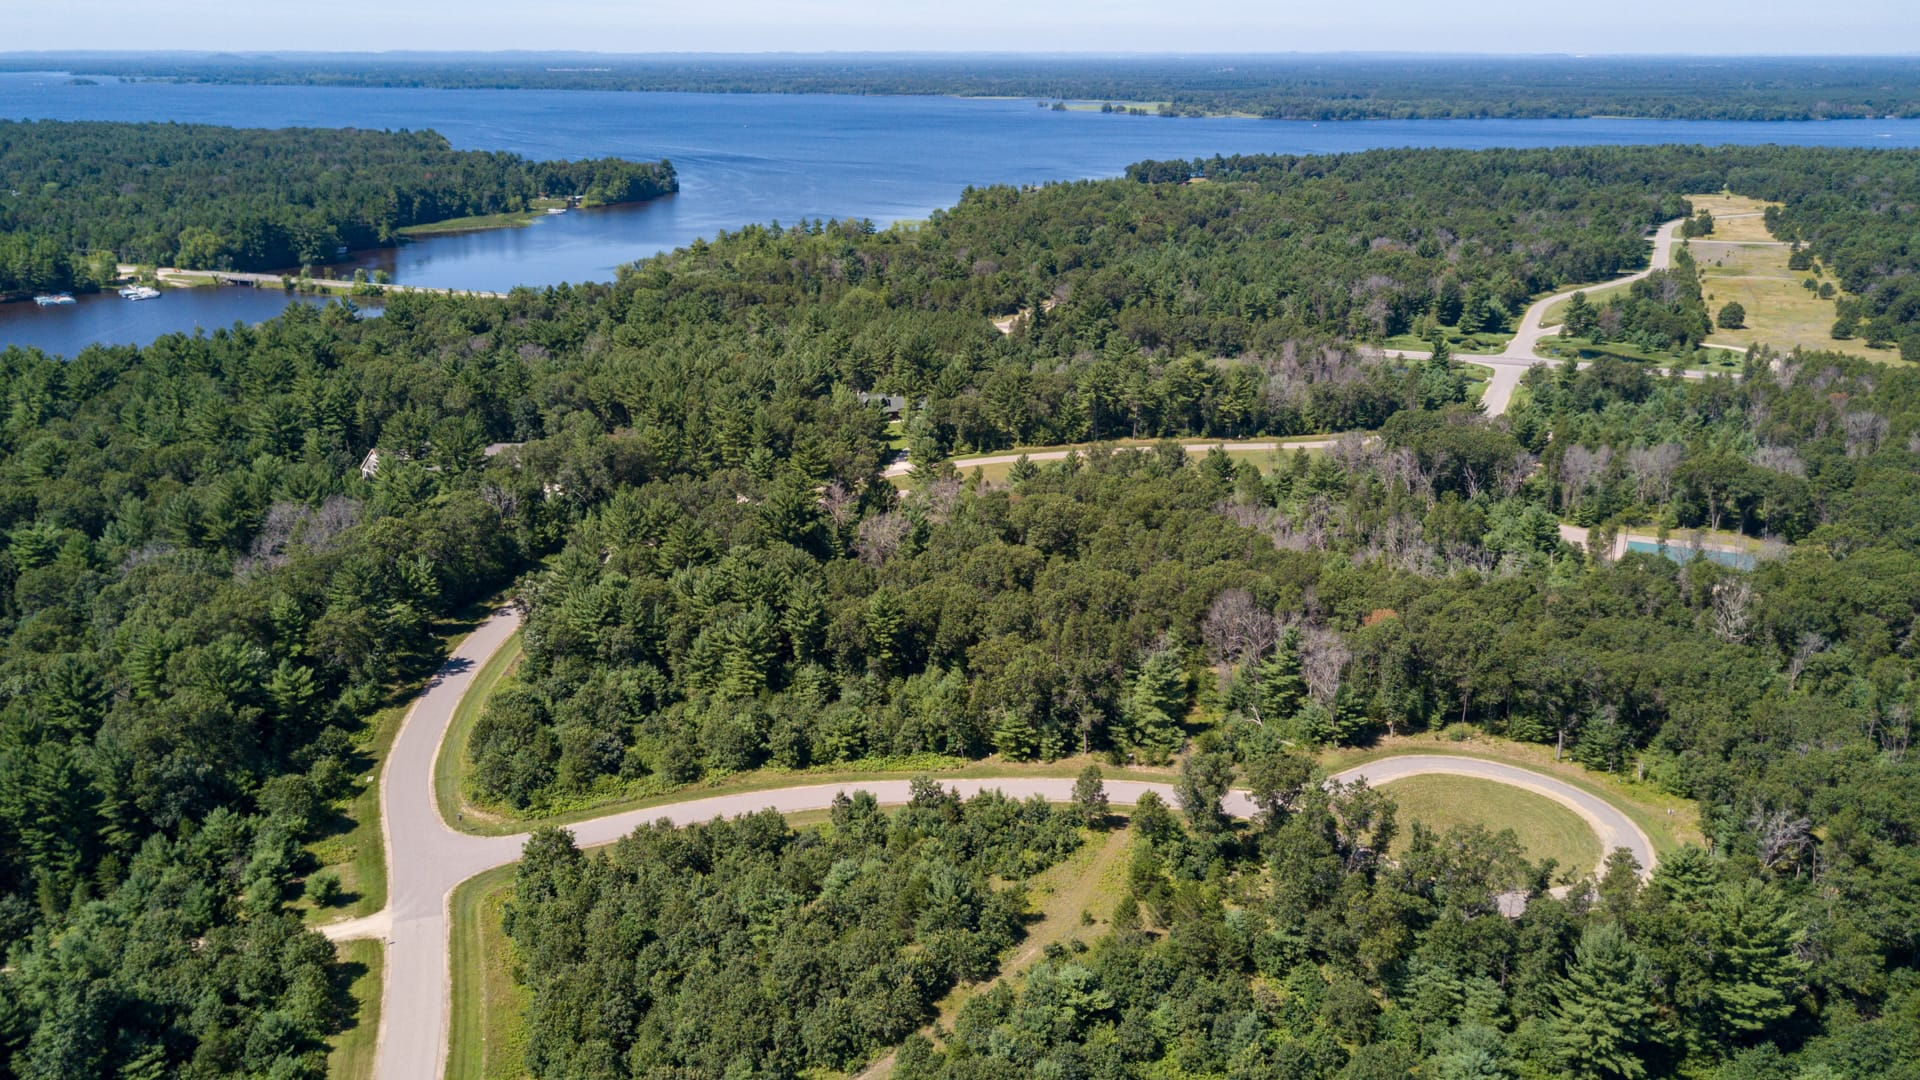 Timber Shores 16x9 Aerial images-MLS - 032.jpg